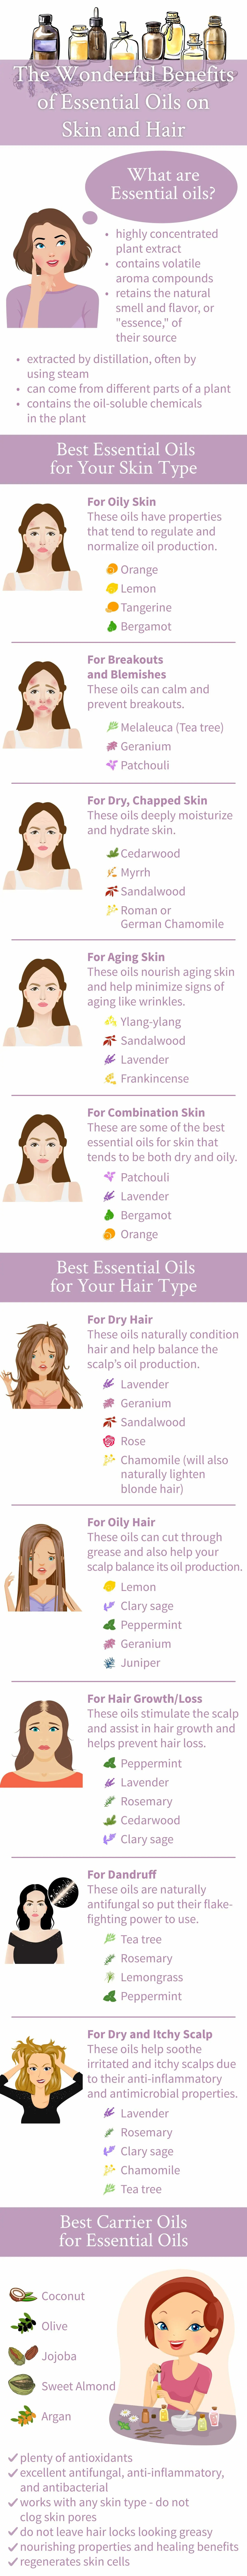 Your Basic Guide to Essential Oil for the Hair and Skin